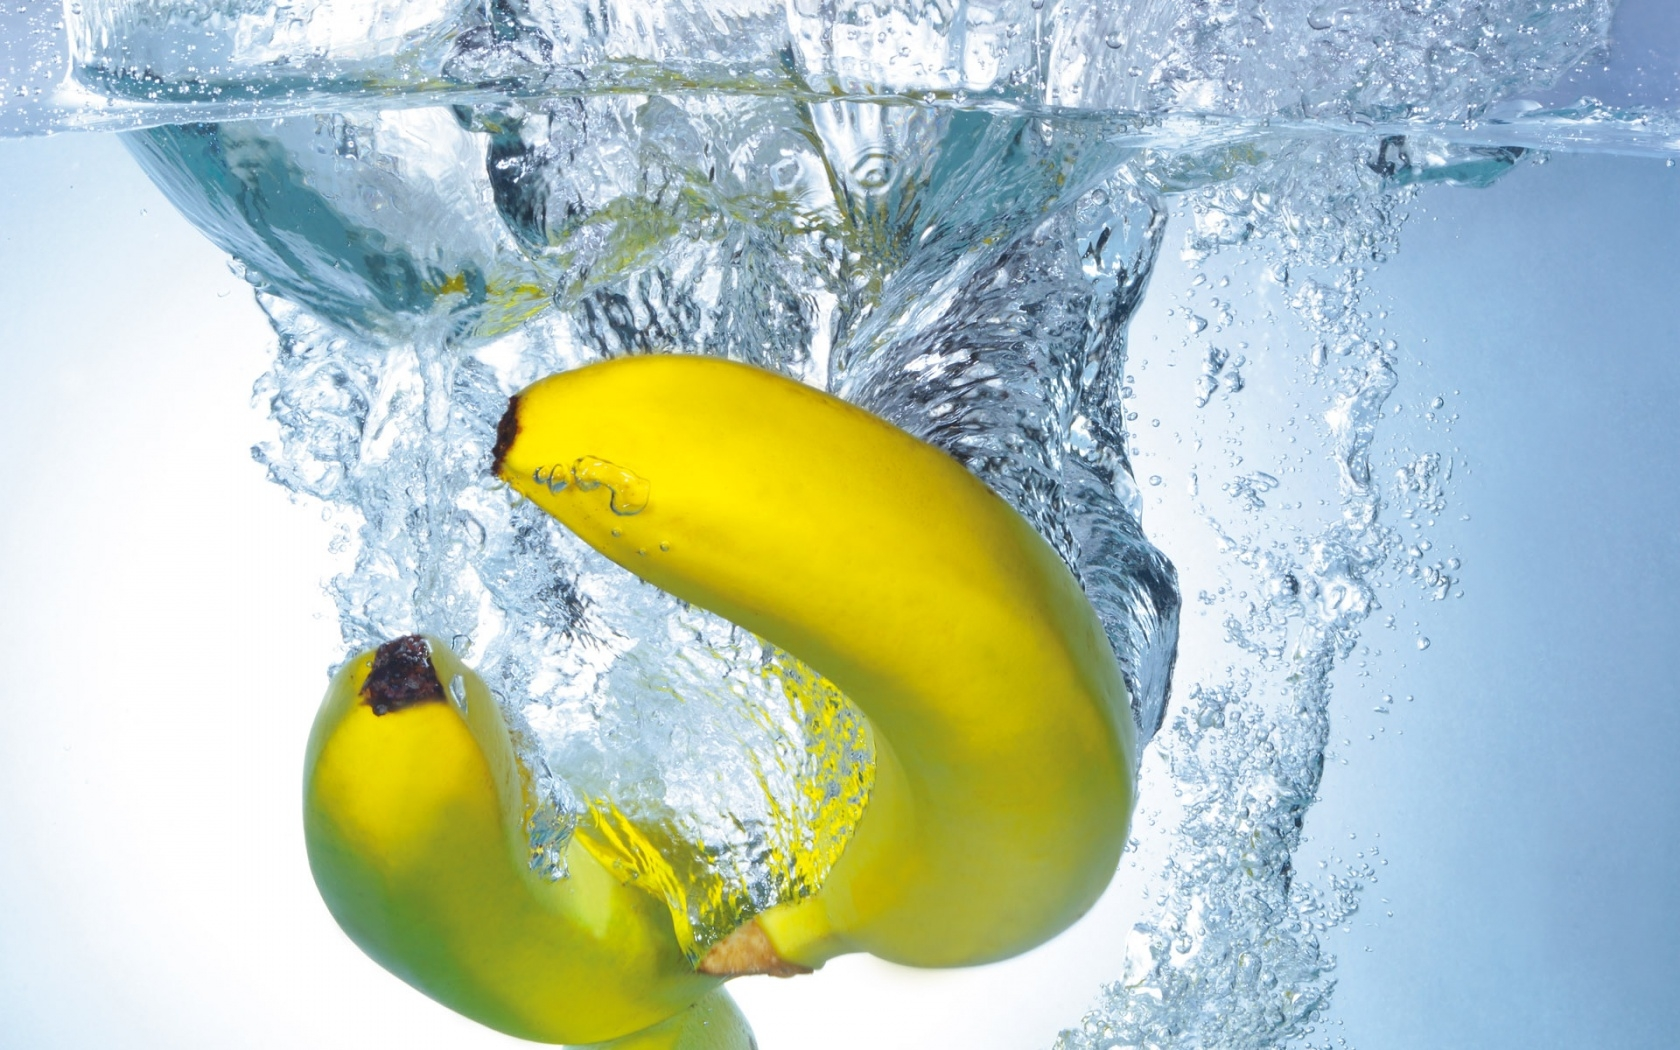 bananas_water_bubbles_immersion_hd-wallpaper-43601